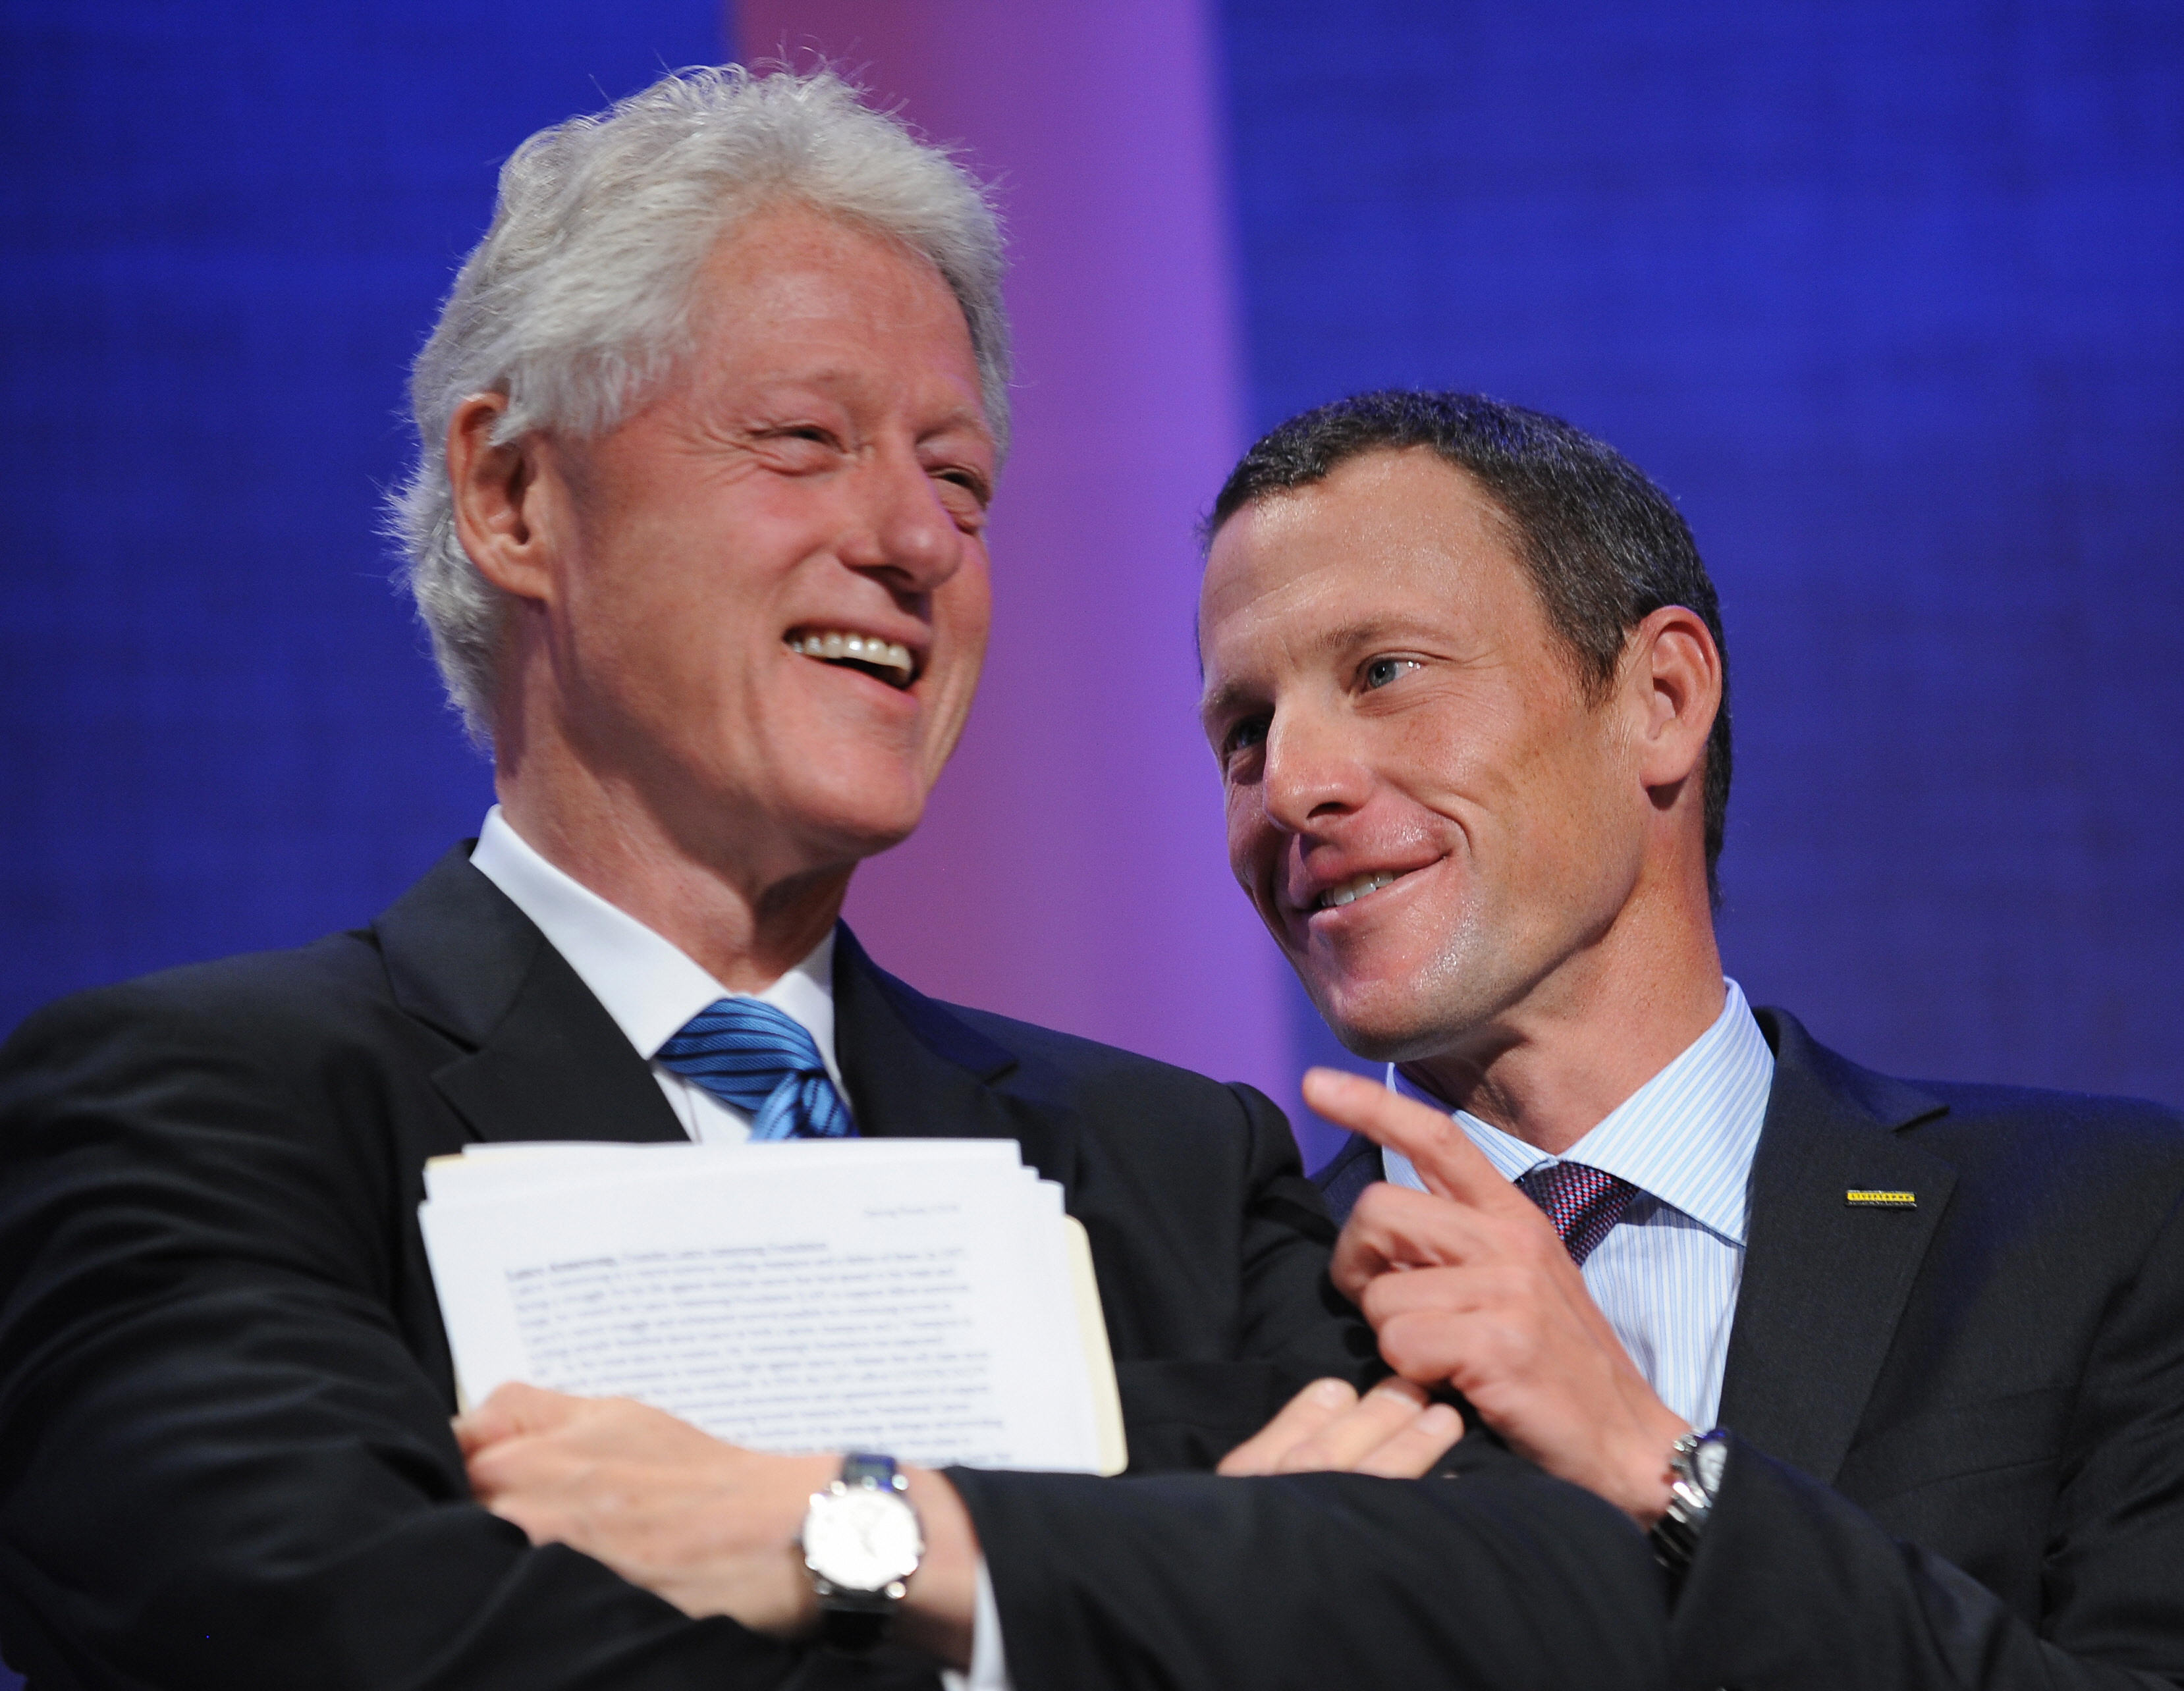 Former President Bill Clinton and Lance Armstrong at the Clinton Global Initiative (CGI) smile on Sept. 24, 2008 in New York. (credit: STAN HONDA/AFP/Getty Images)